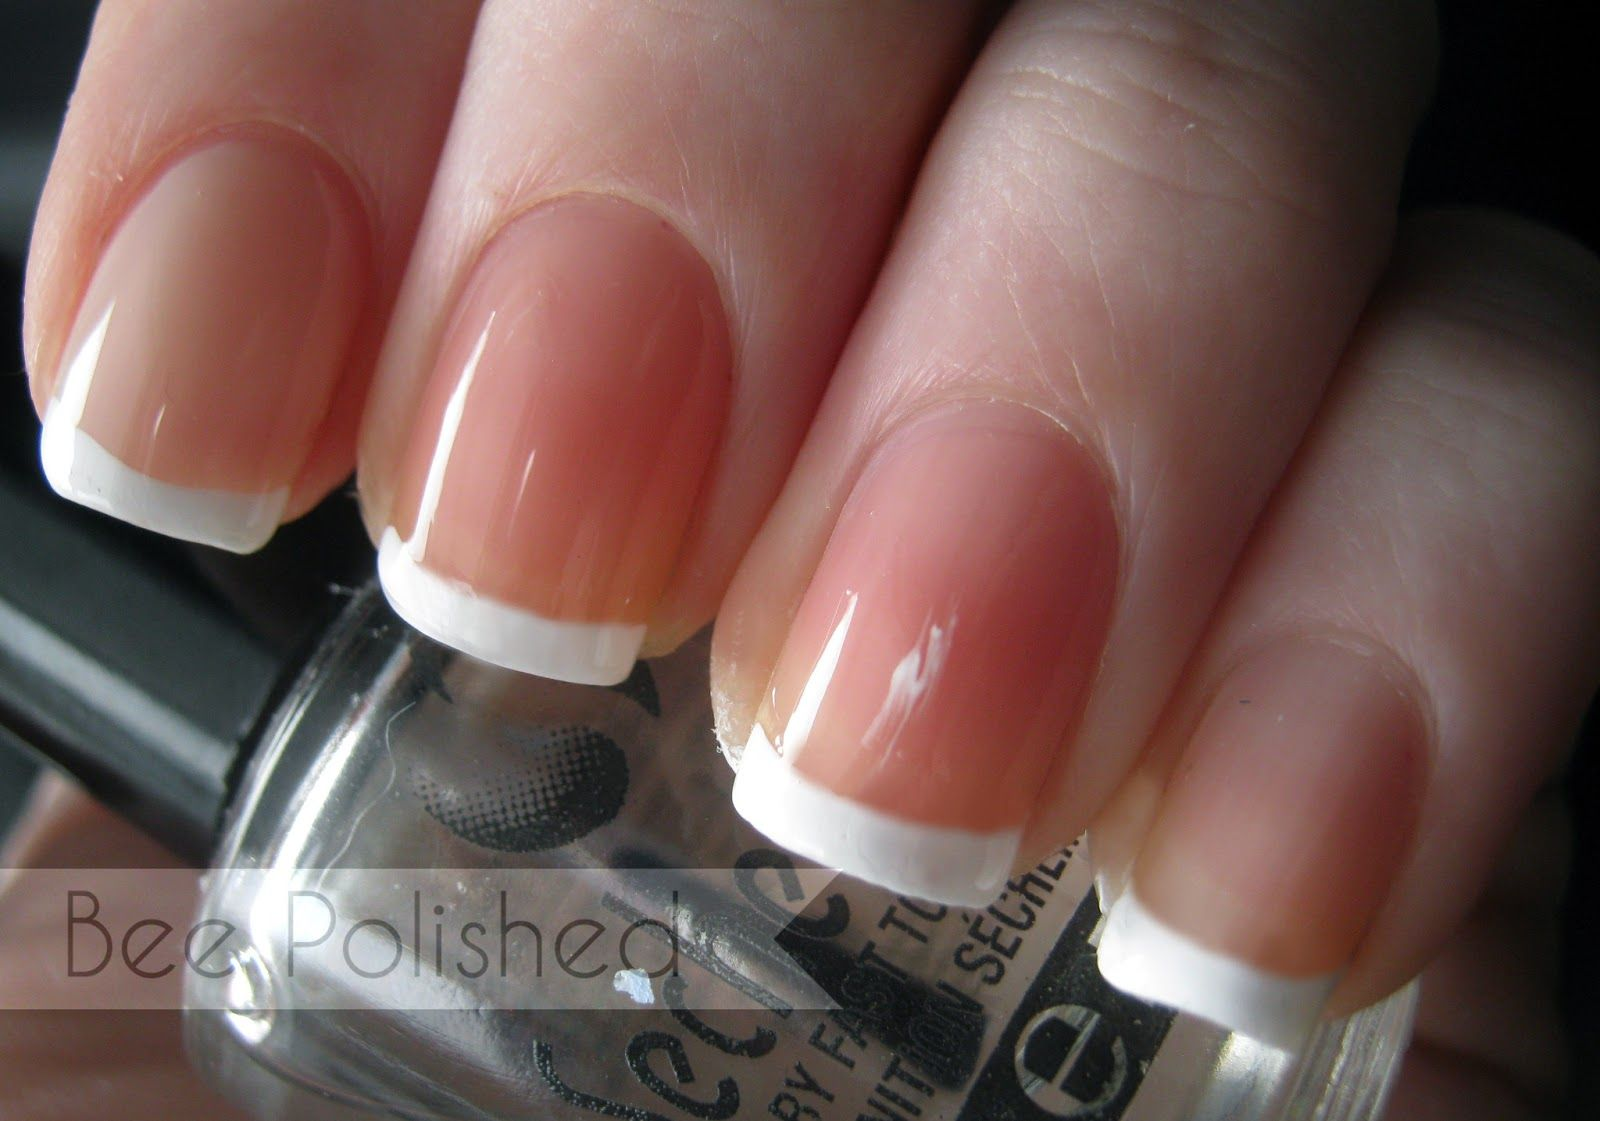 Bee Polished: Rehab Your Nails: How to fake a long nail bed | Beauty ...